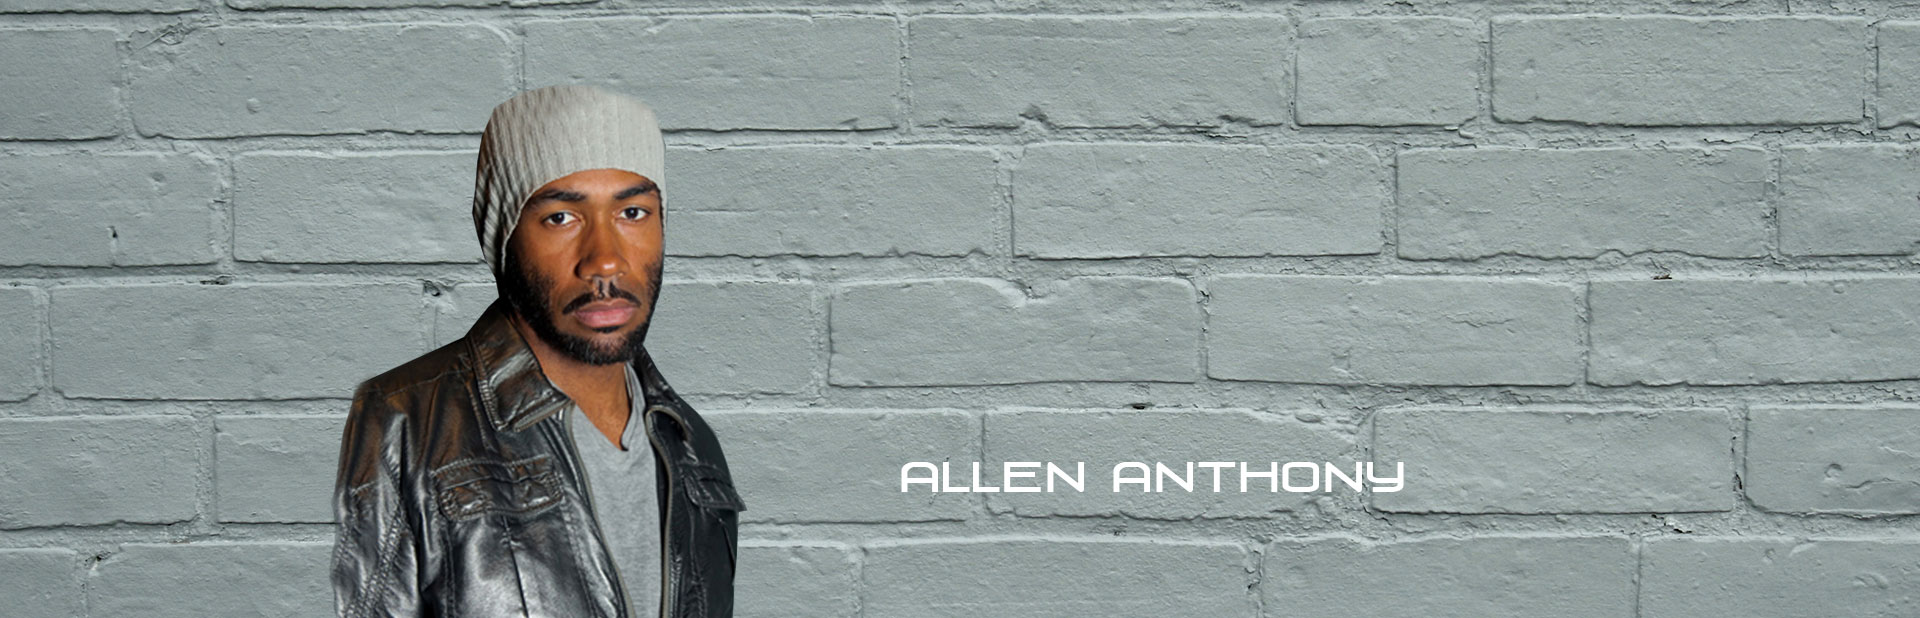 Allen Anthony1